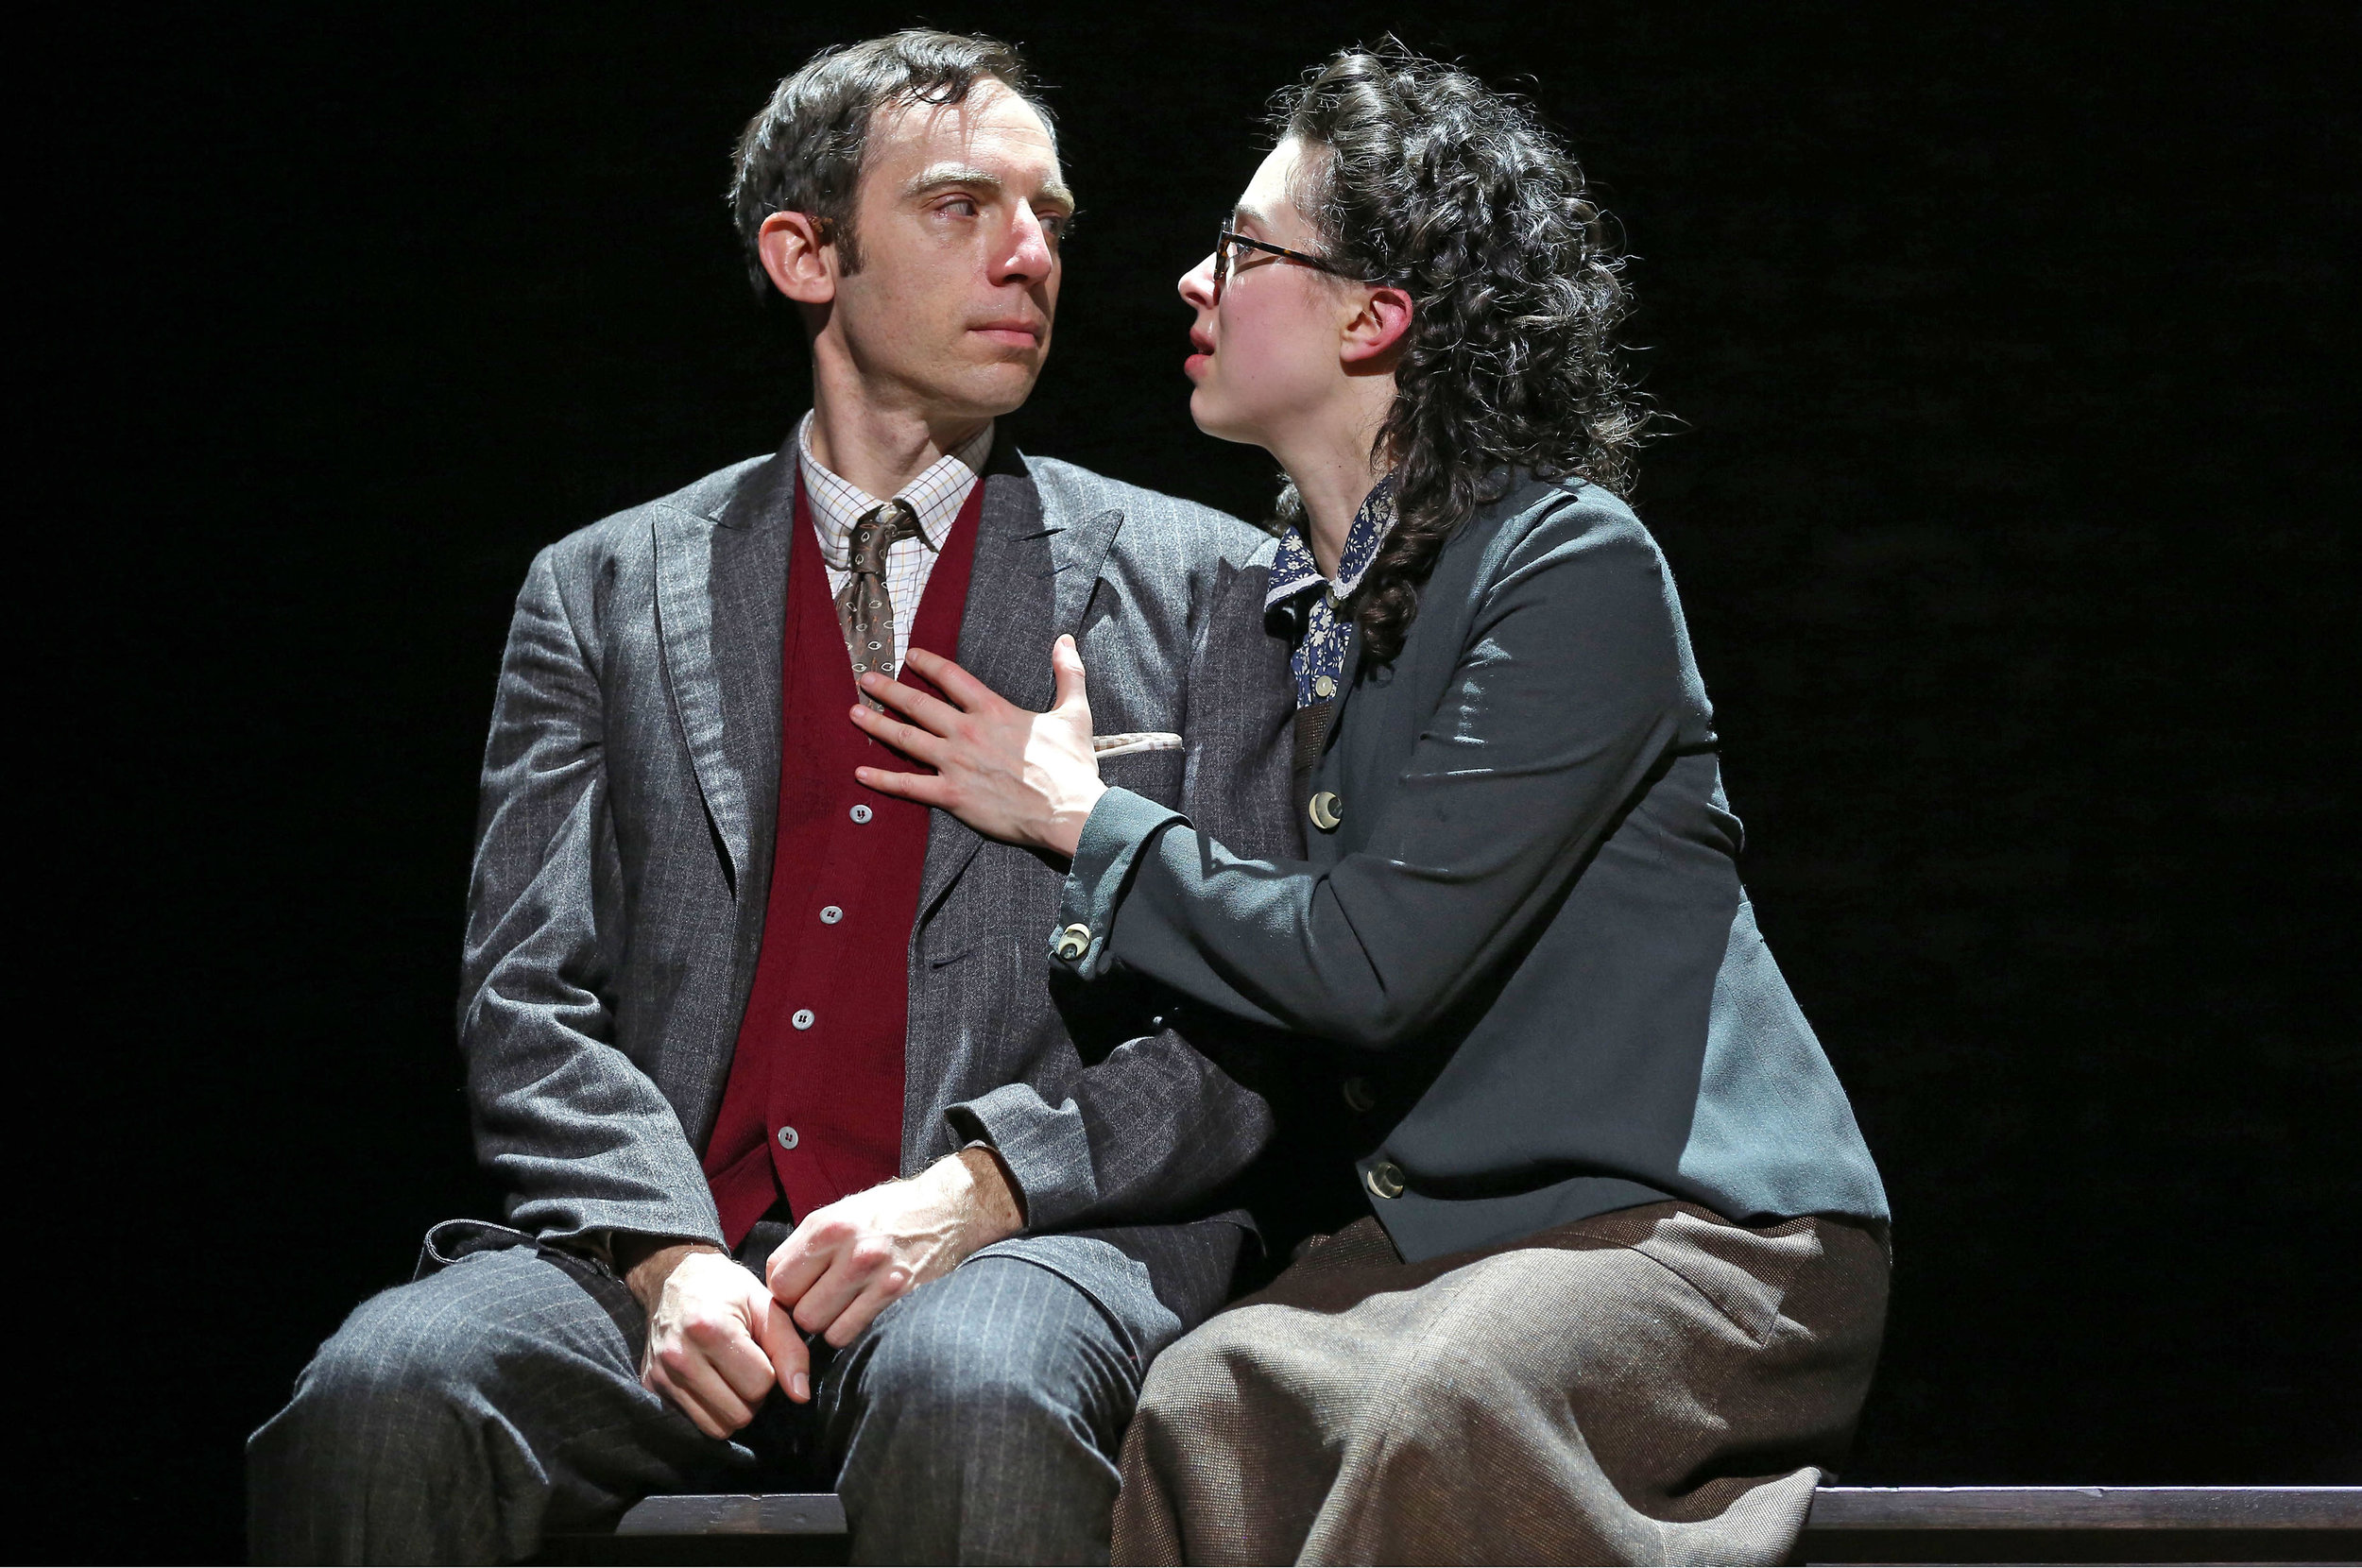 Max Gordon Moore as Sholem Asch and Adina Verson as Madje Asch in INDECENT, a new play by Paula Vogel, co-created by Paula Vogel and Rebecca Taichman, and directed by Rebecca Taichman, at the Cort Theatre, 138 West 48th Street. Credit: © Carol Rosegg